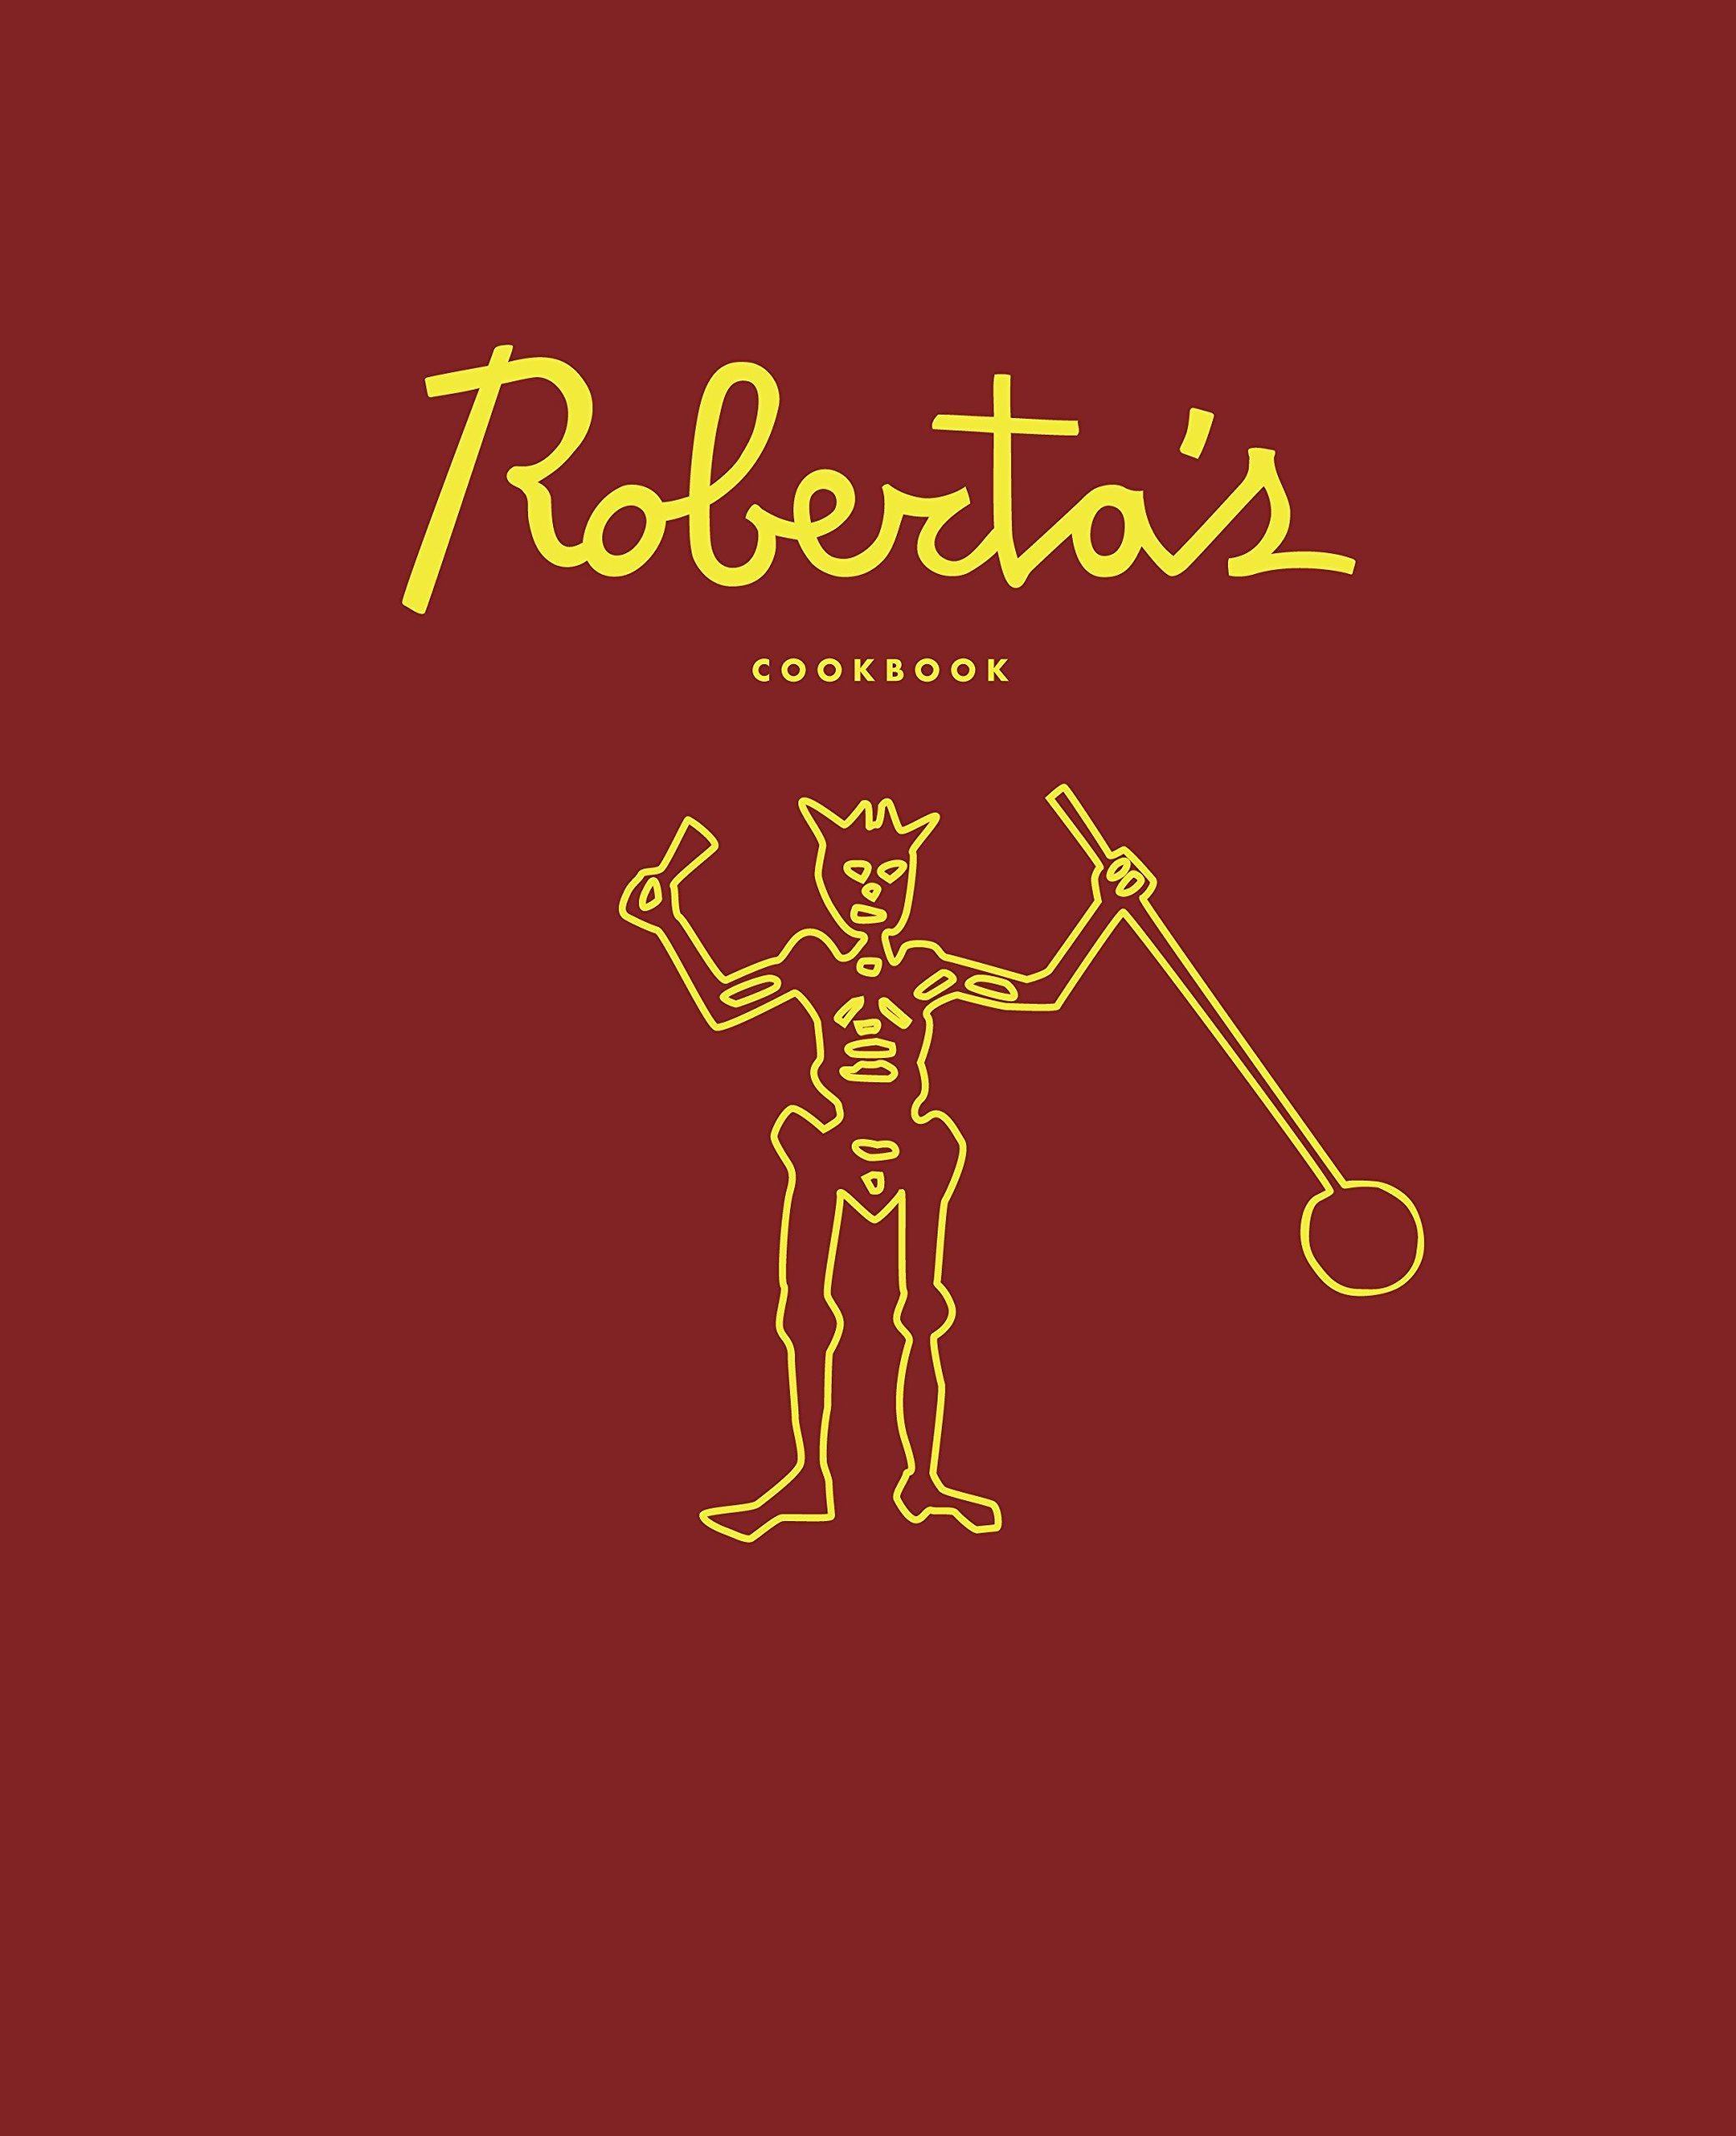 Roberta's Cookbook by Clarkson Potter Publishers